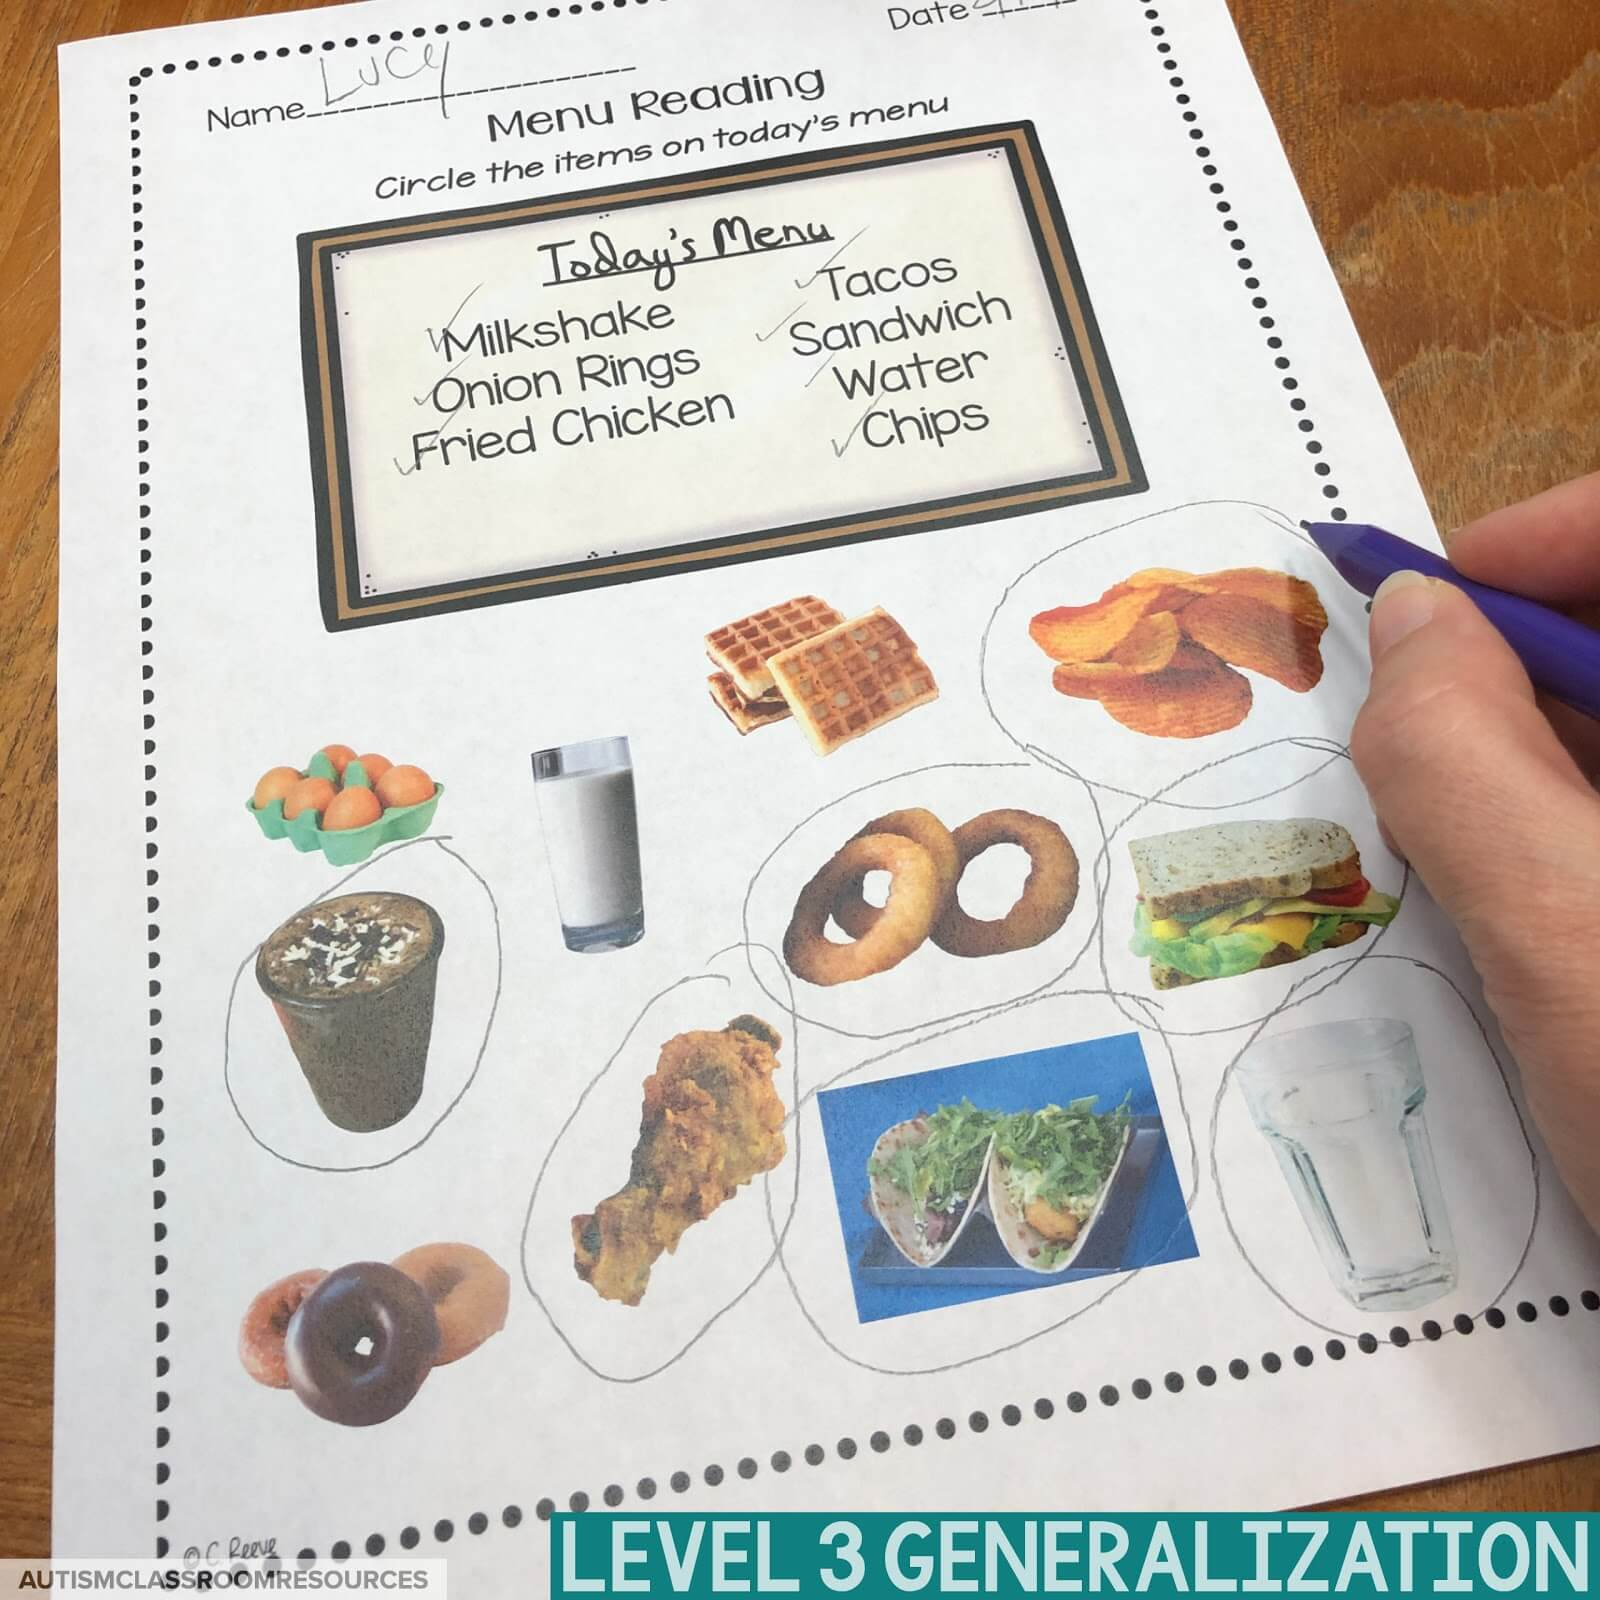 Level 3 of the functional sight words reading worksheets are designed to start generalizing students' reading comprehension skills to real-life settings. They are perfect for life skills classes and can save you time in both prep and data collection. Find out how in this post.